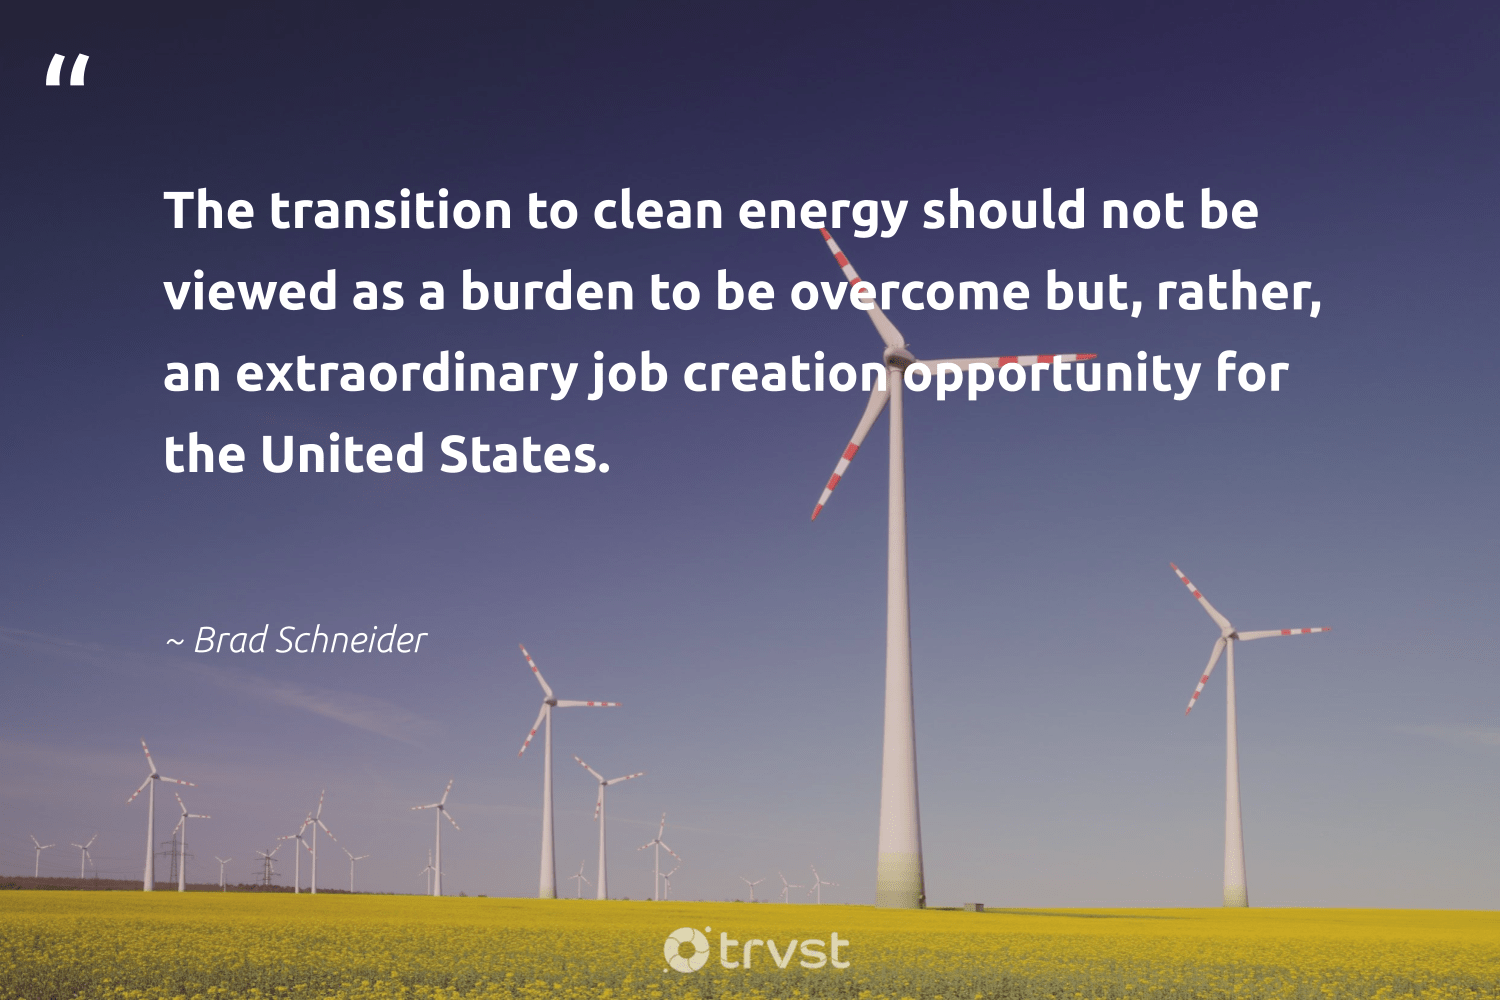 """""""The transition to clean energy should not be viewed as a burden to be overcome but, rather, an extraordinary job creation opportunity for the United States.""""  - Brad Schneider #trvst #quotes #renewableenergy #energy #cleanenergy #greenenergy #environmental #climatechange #bethechange #switchfuelenergy #cop21 #environment"""